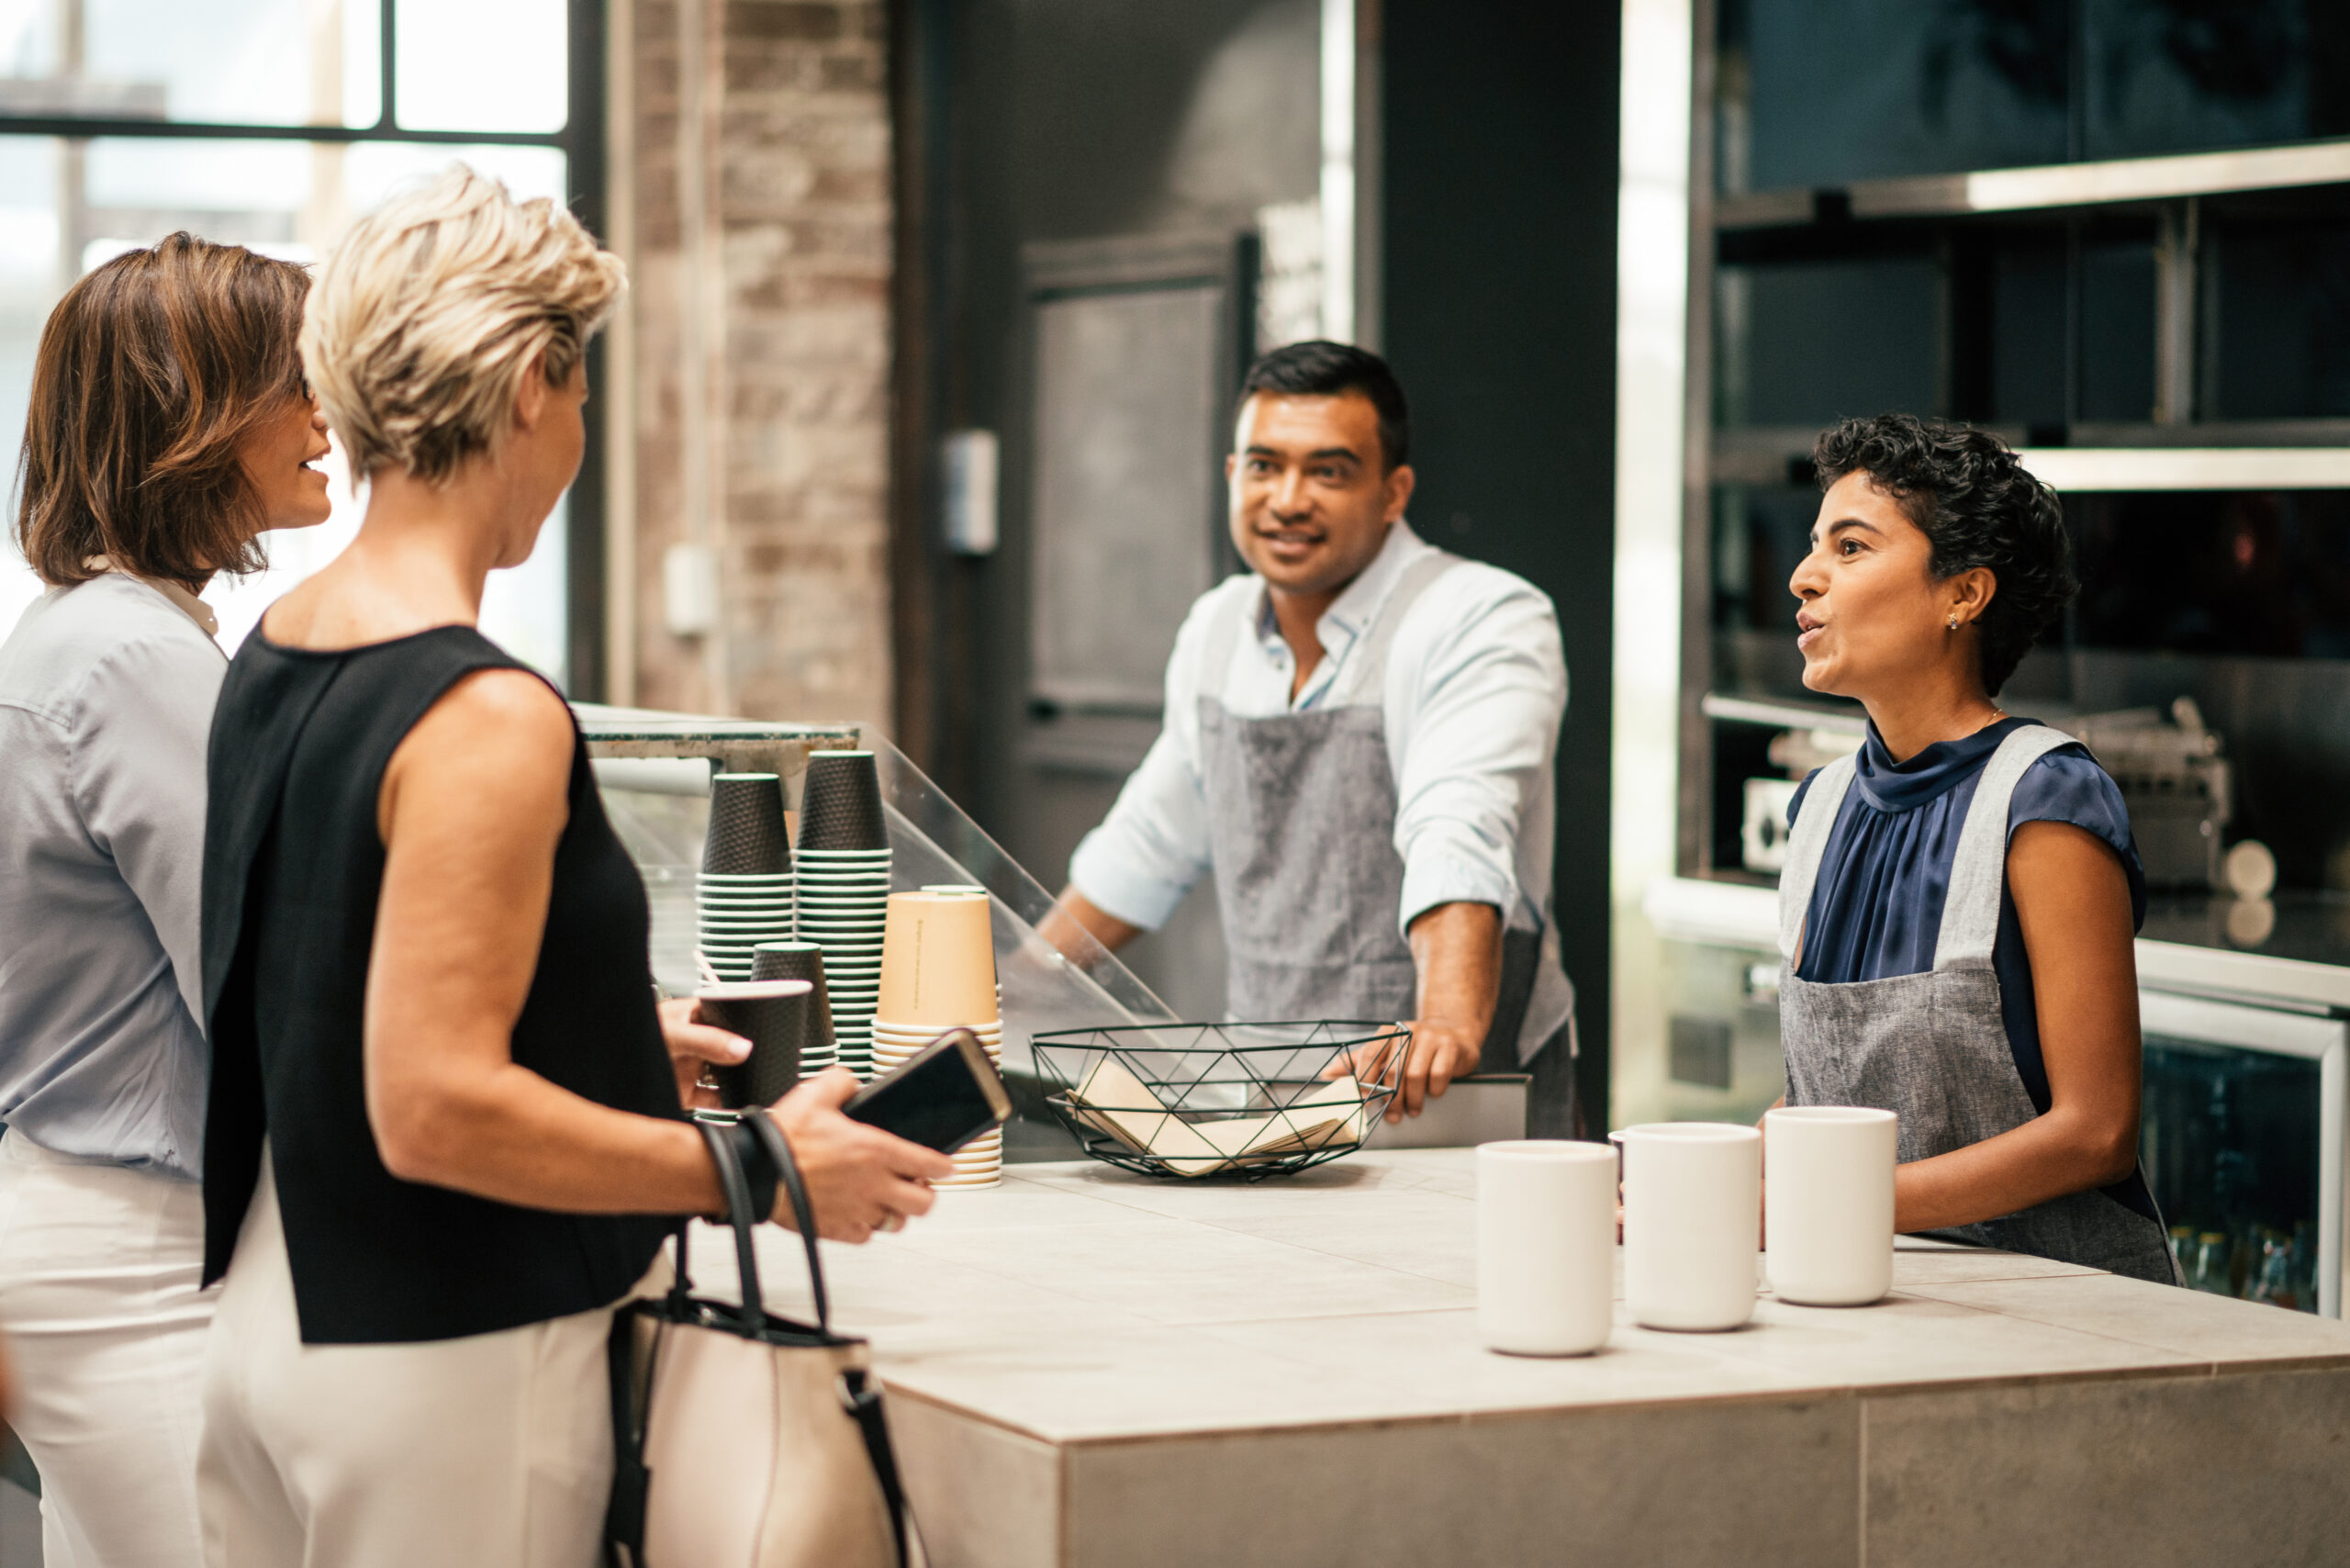 Increase visibility in your restaurant